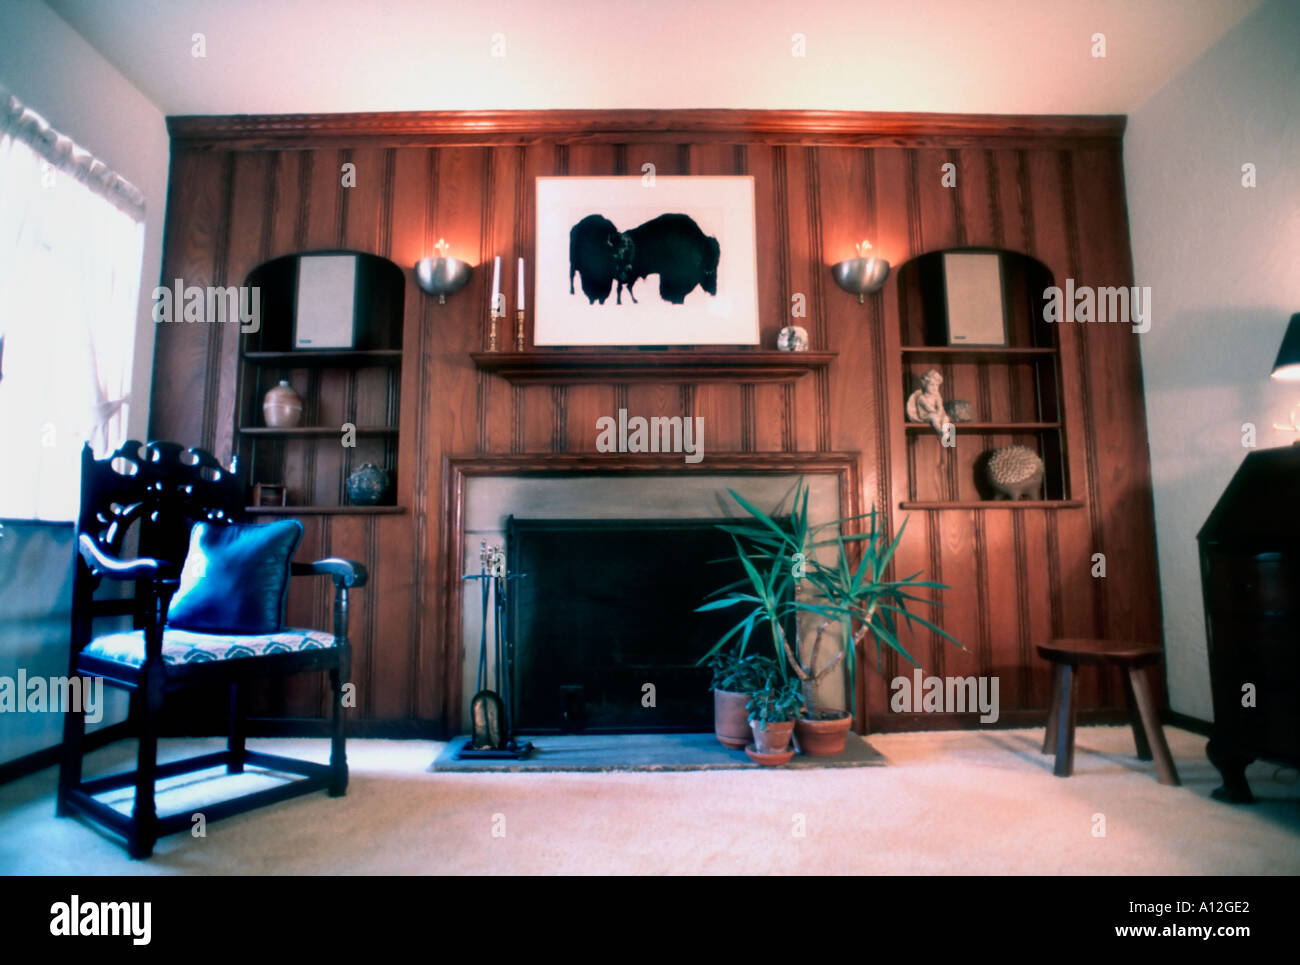 Usa American Homes Single Family House Interior Living Room With Stock Photo Alamy